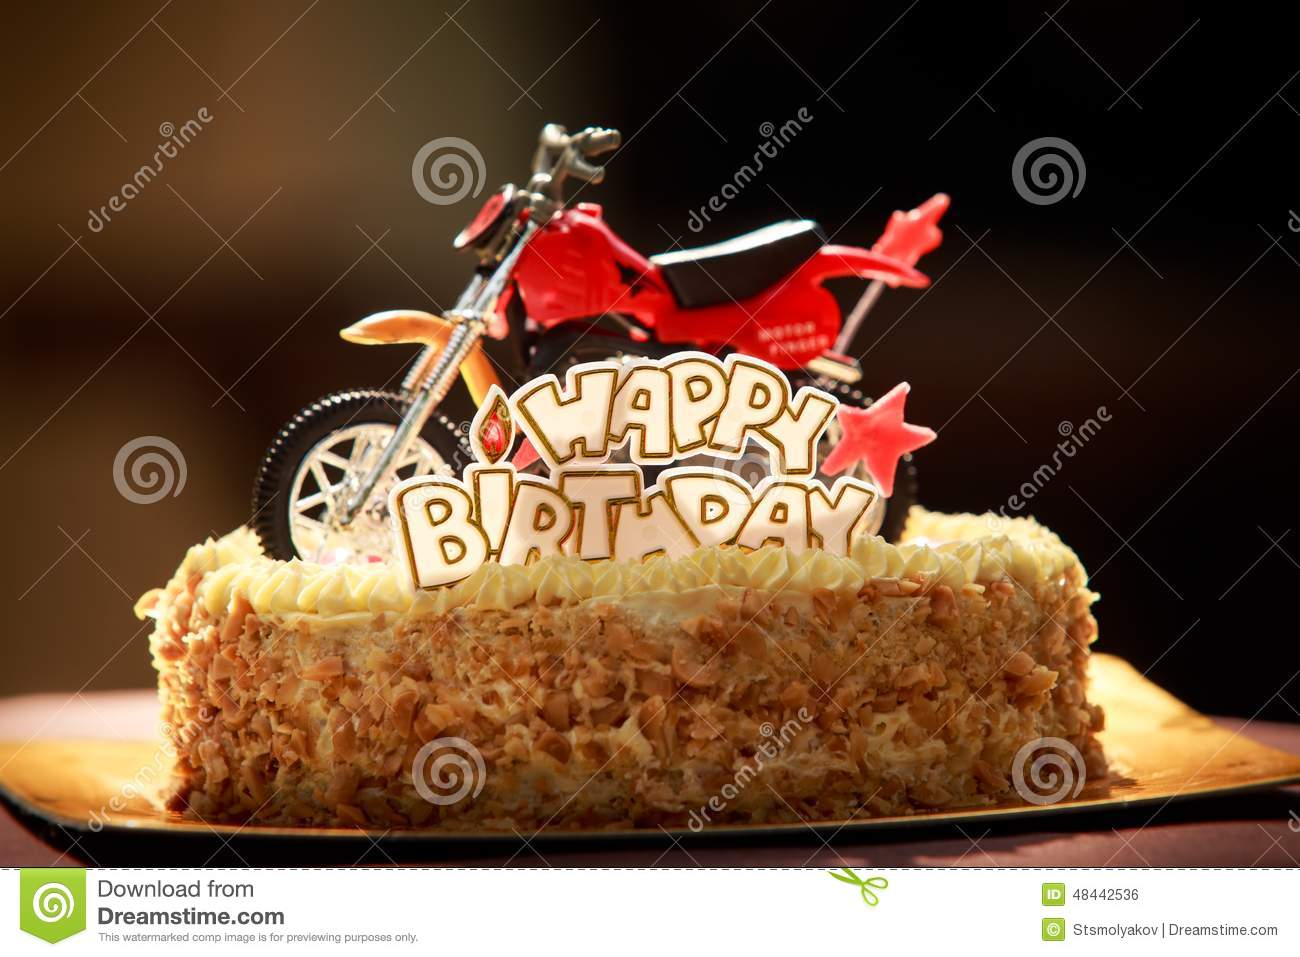 Mensagem De Bolo De Aniversario: Birthday Cake Decorated With Motorcycle And Red Stars